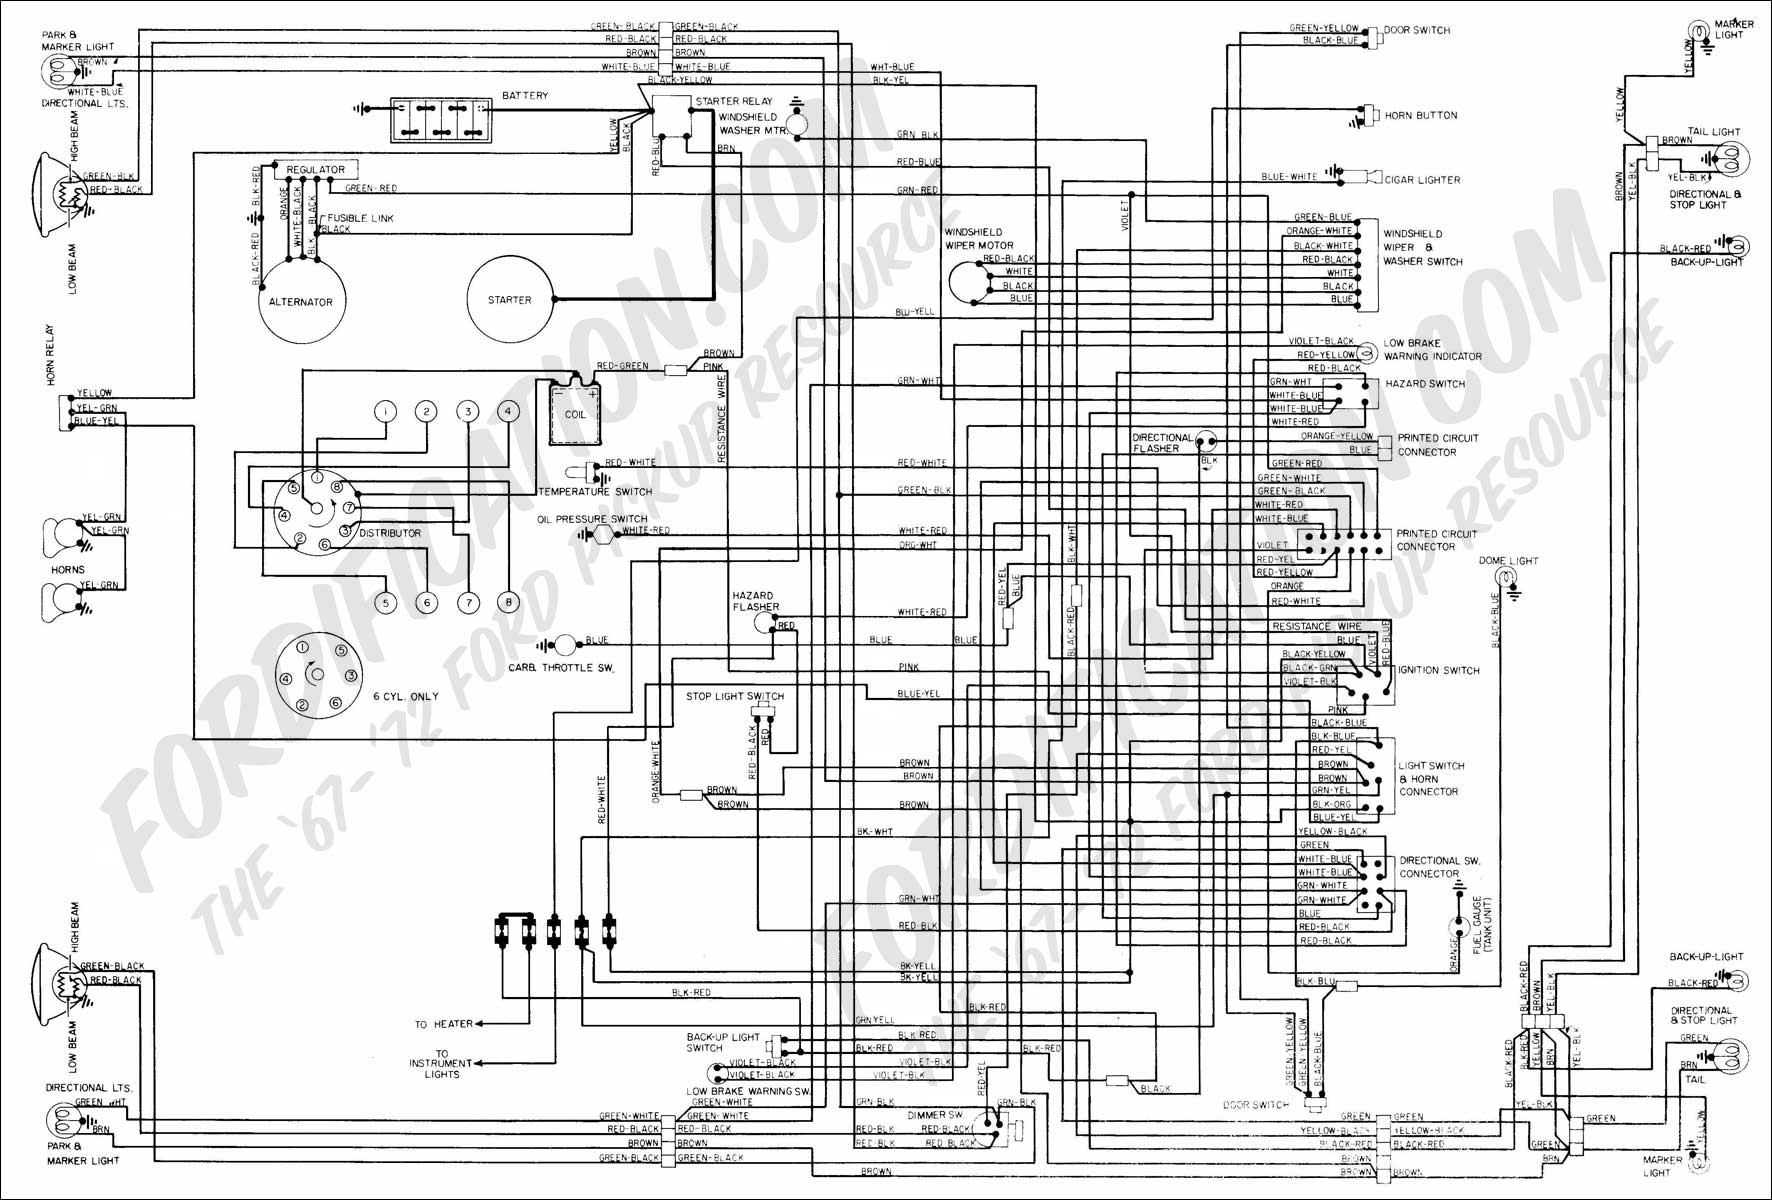 05 F150 Engine Diagram Wiring Library Motorcycle Driving Lights 1999 Ford F350 Detailed Schematics Rh Mrskindsclass Com Radio Harness